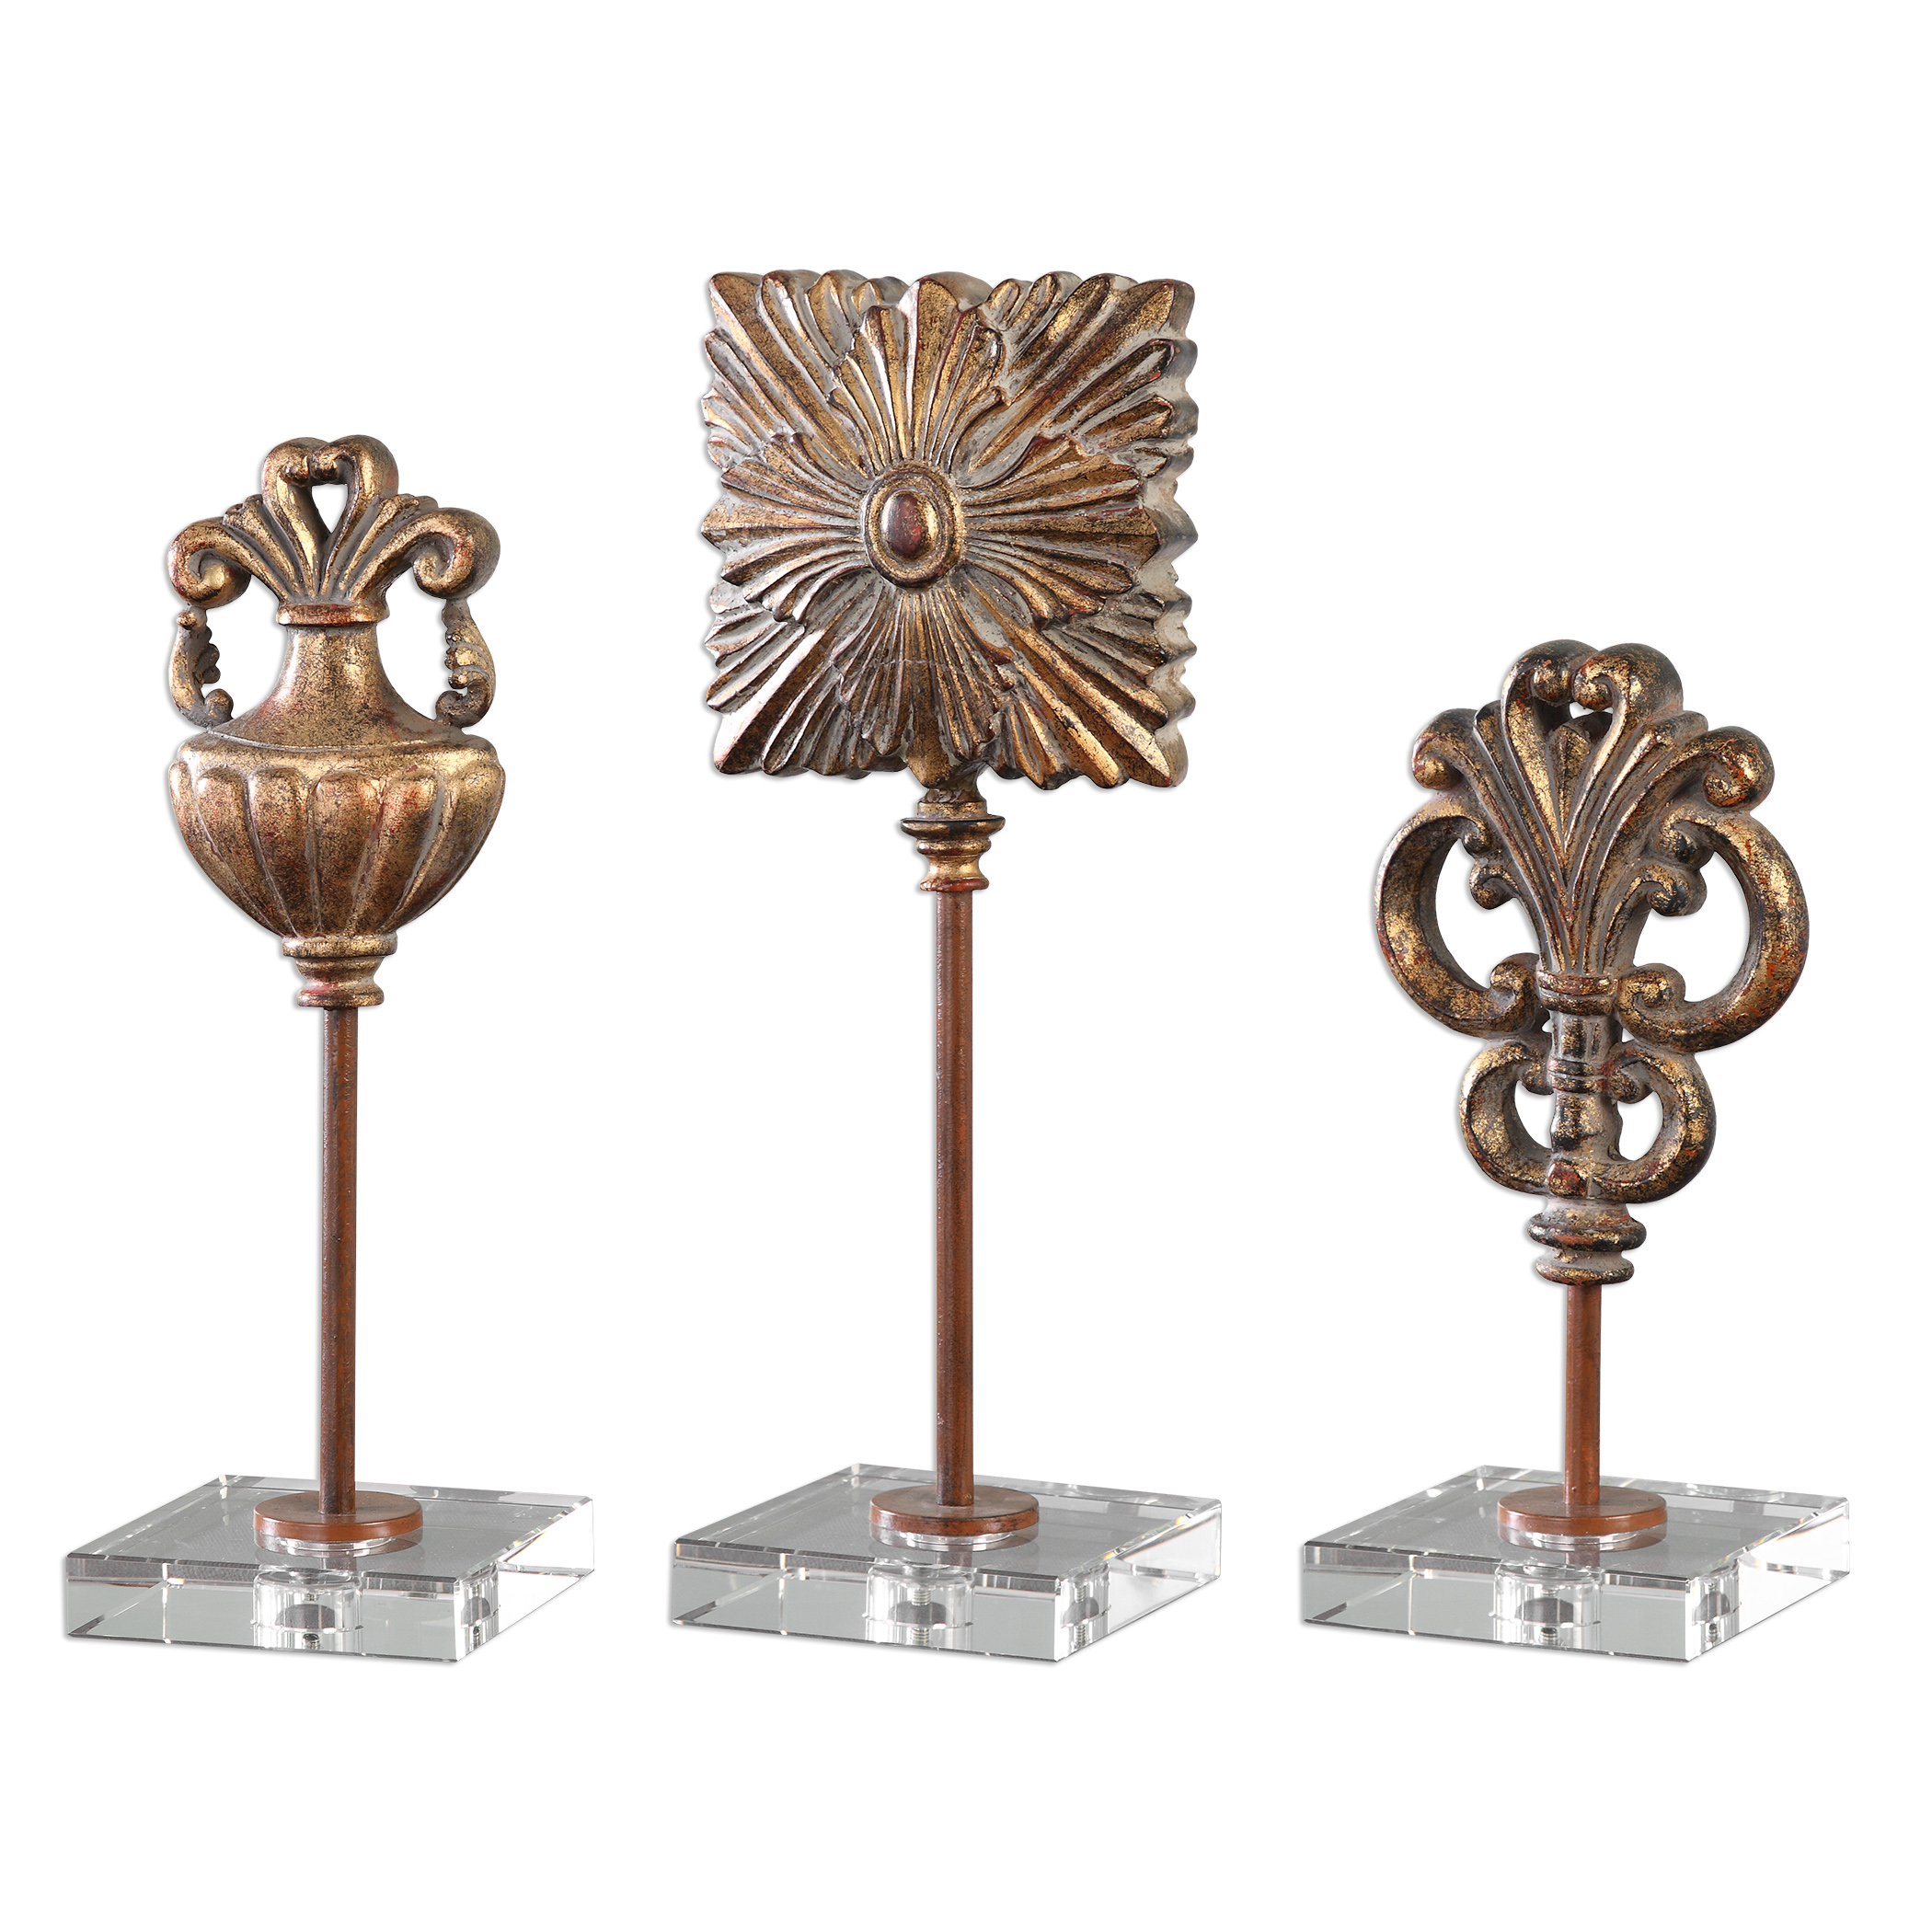 Uttermost Accessories Cesare Gold Accessories, S/3 - Item Number: 20067